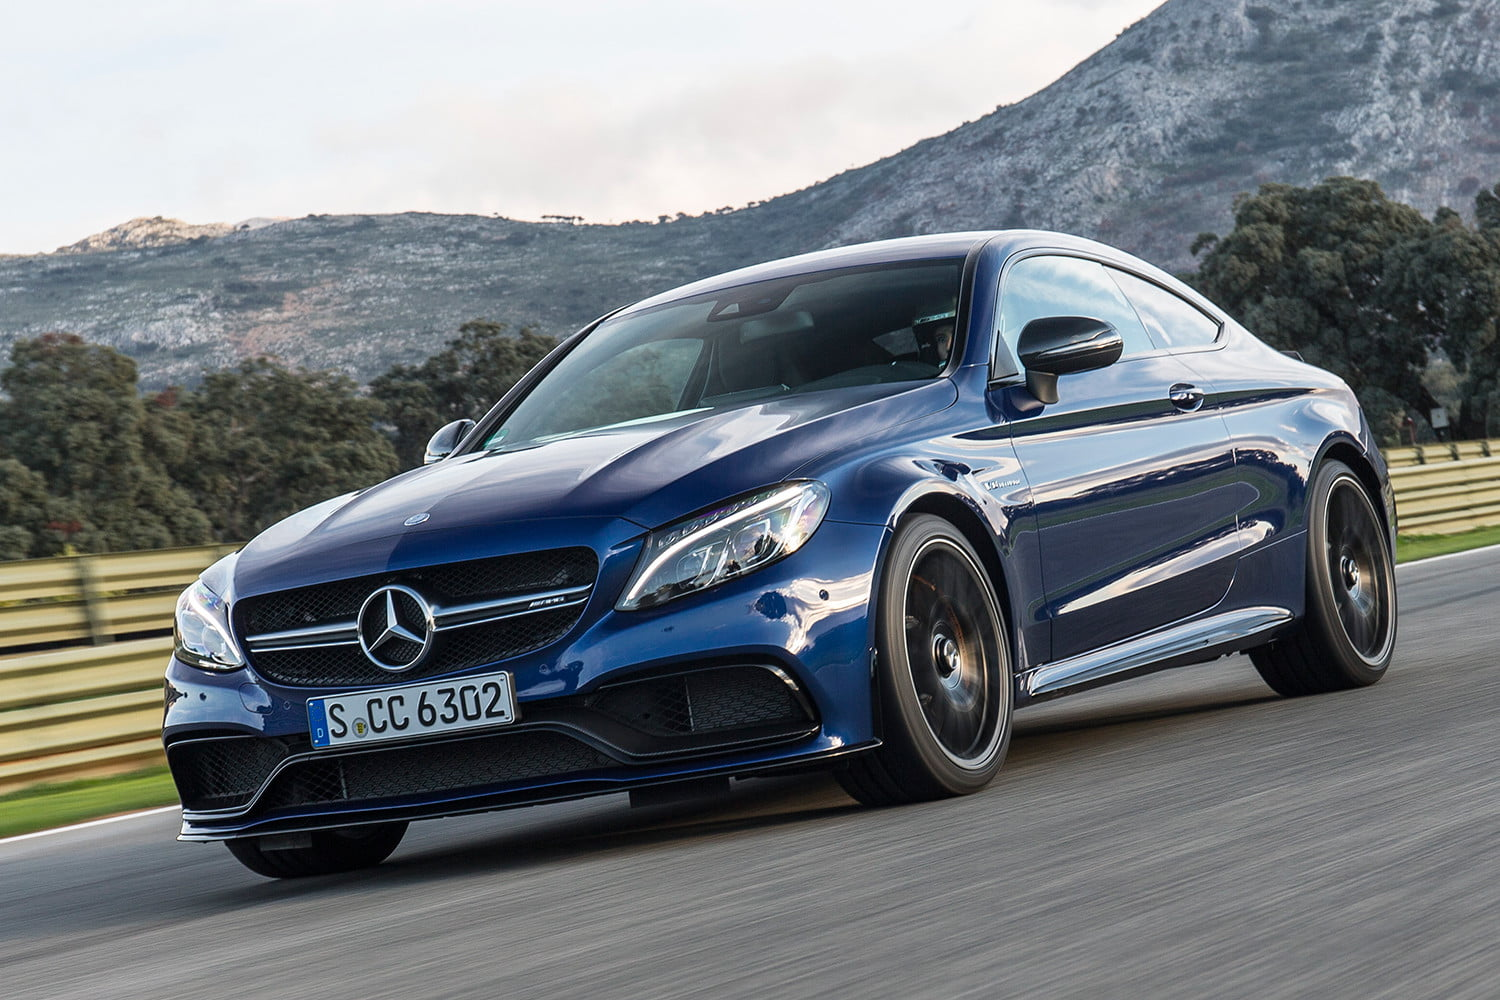 2017 Mercedes Amg C63 S Coupe First Drive Impressions Digital Trends